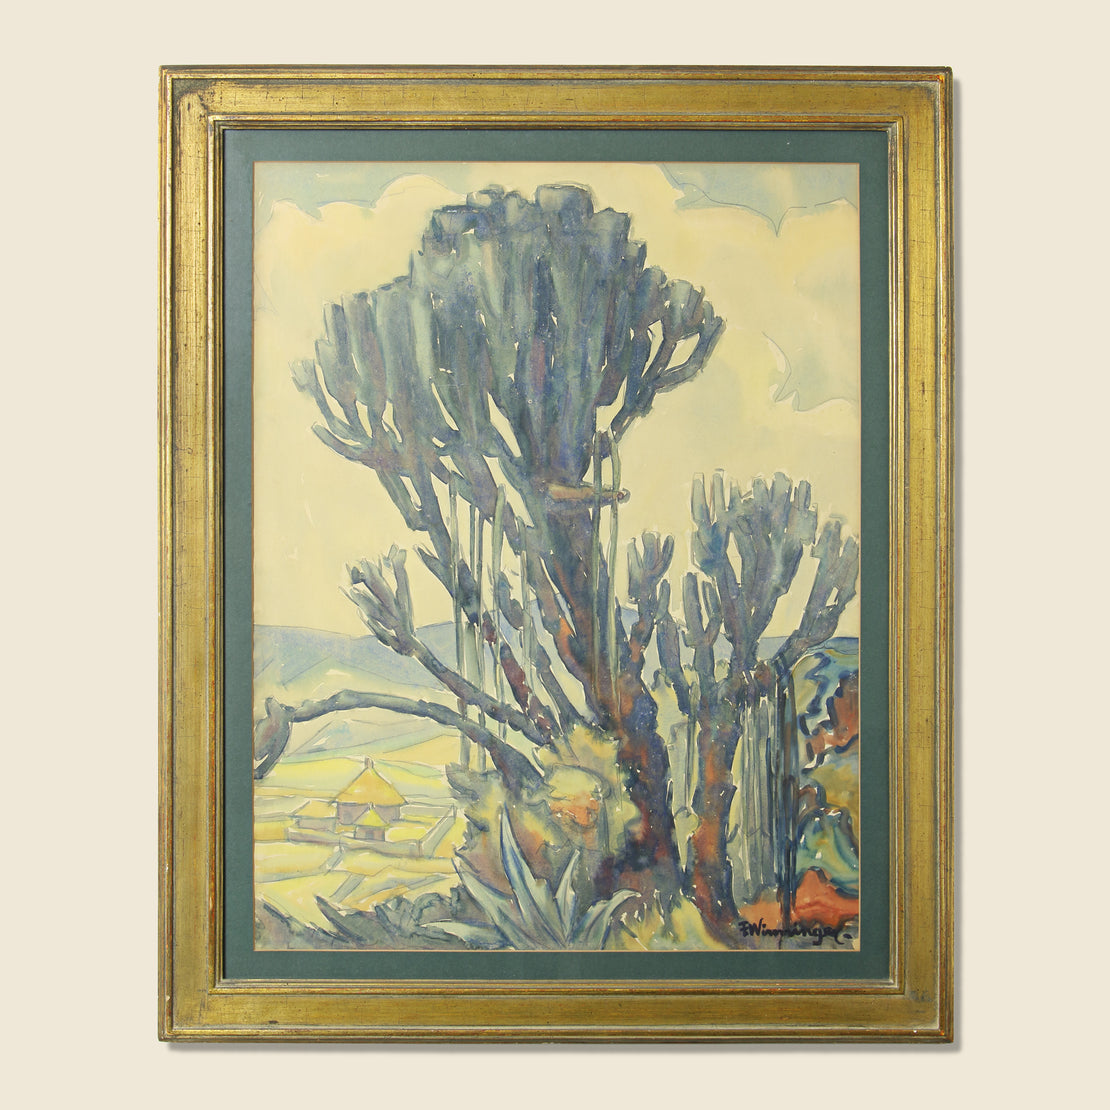 Vintage Saguaro Cactus Watercolor Painting - Franz Winniger